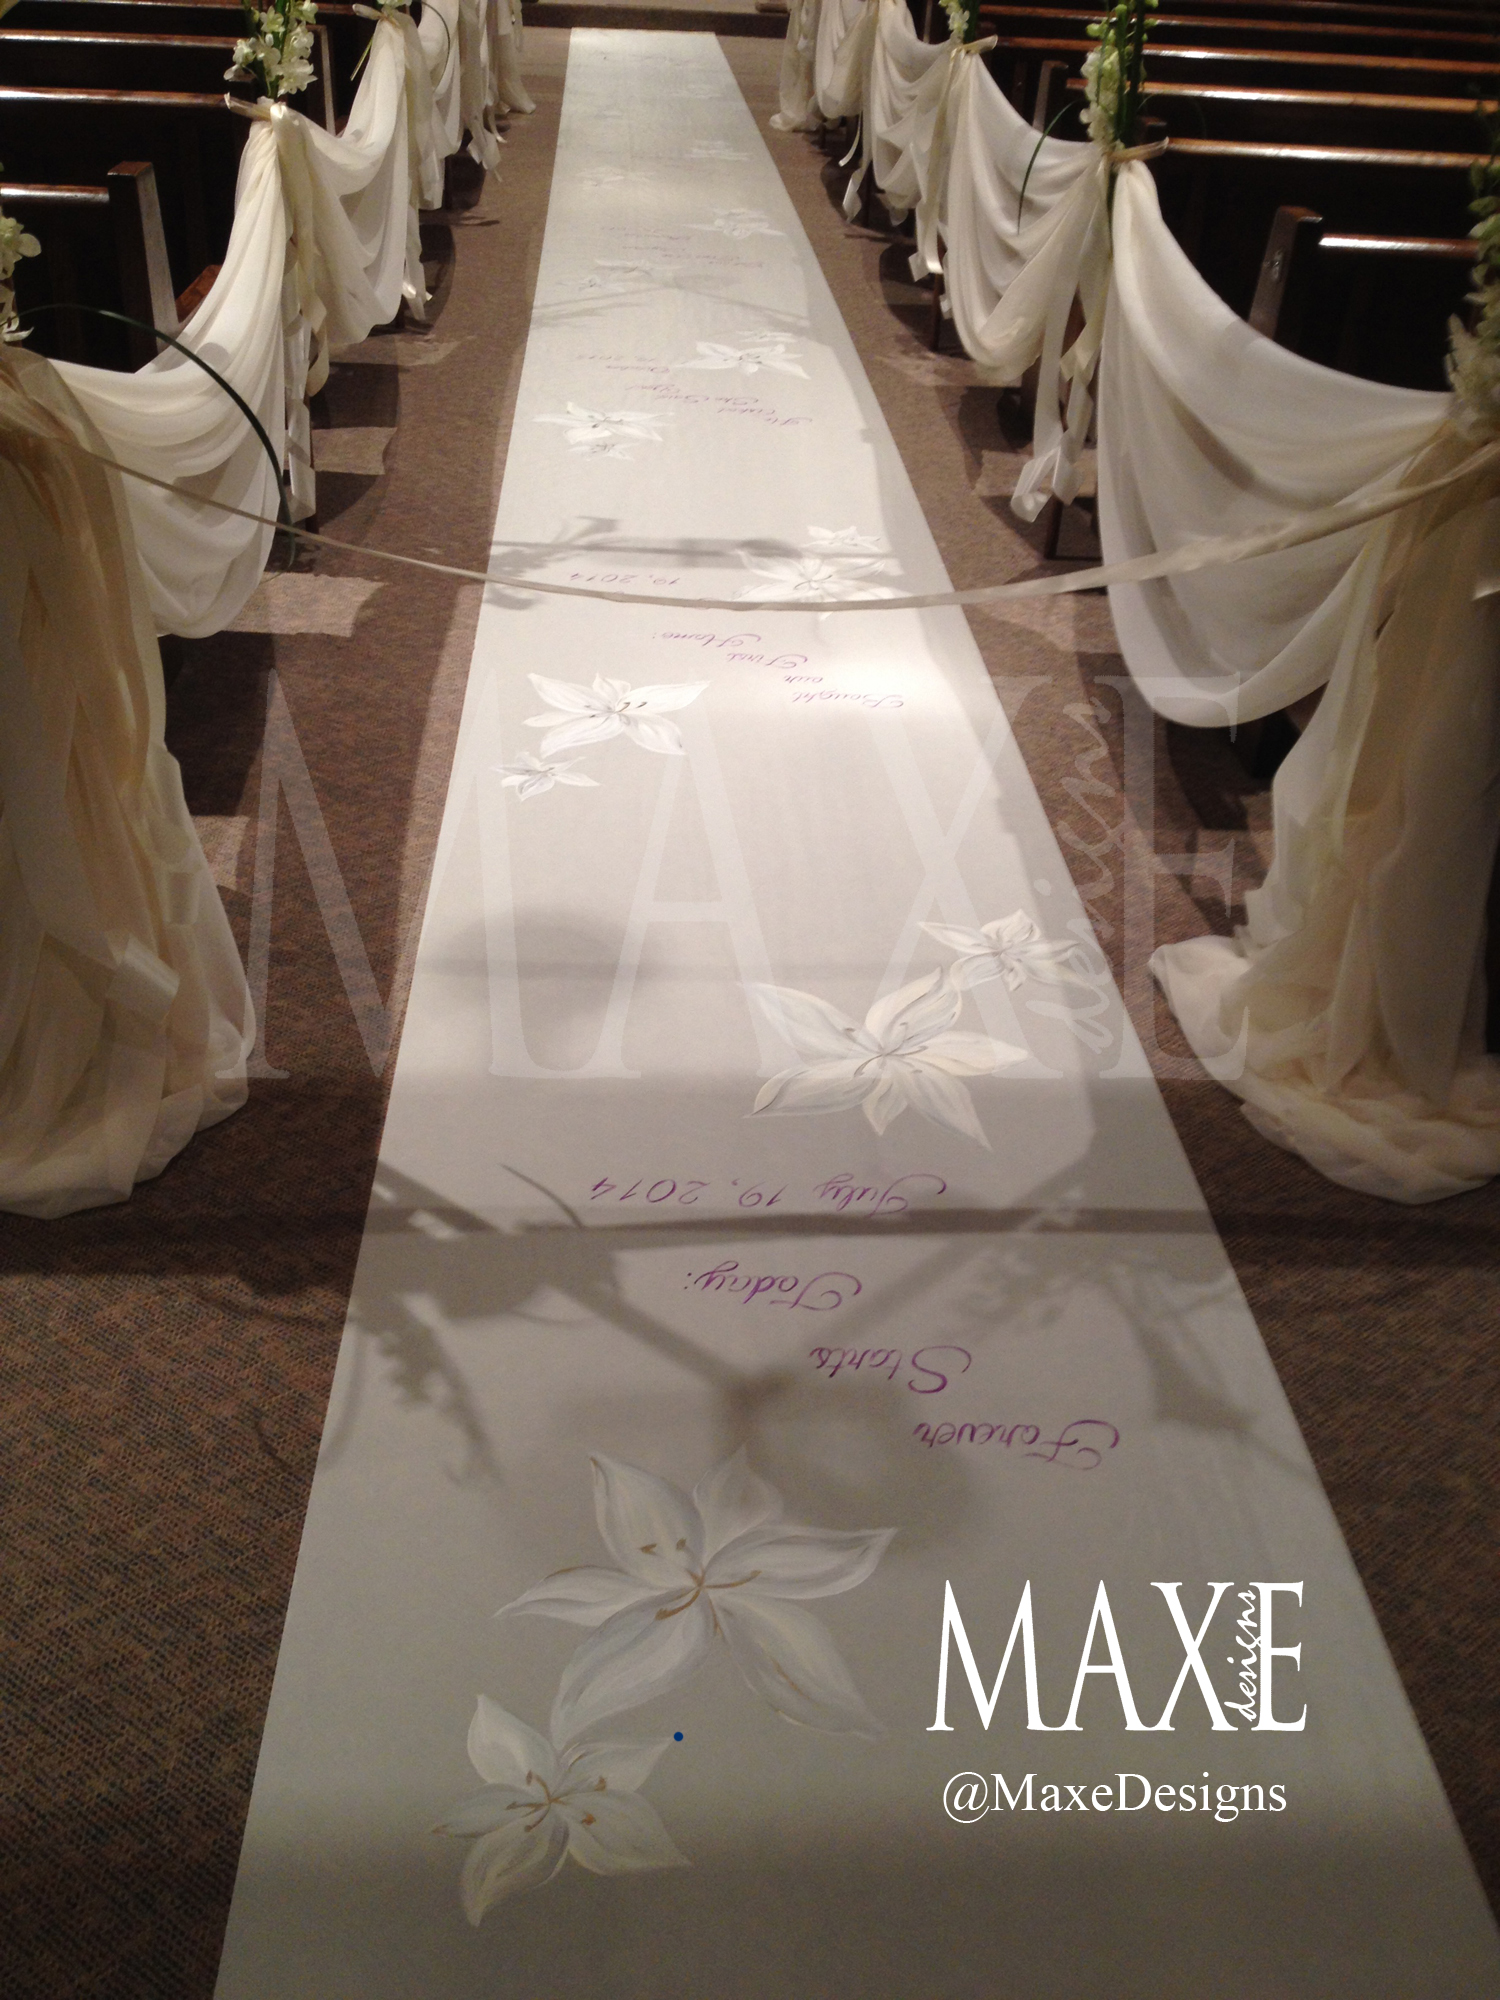 Lindsay & Craig's hand painted aisle runner that shared their special milestones leading up to their wedding day.